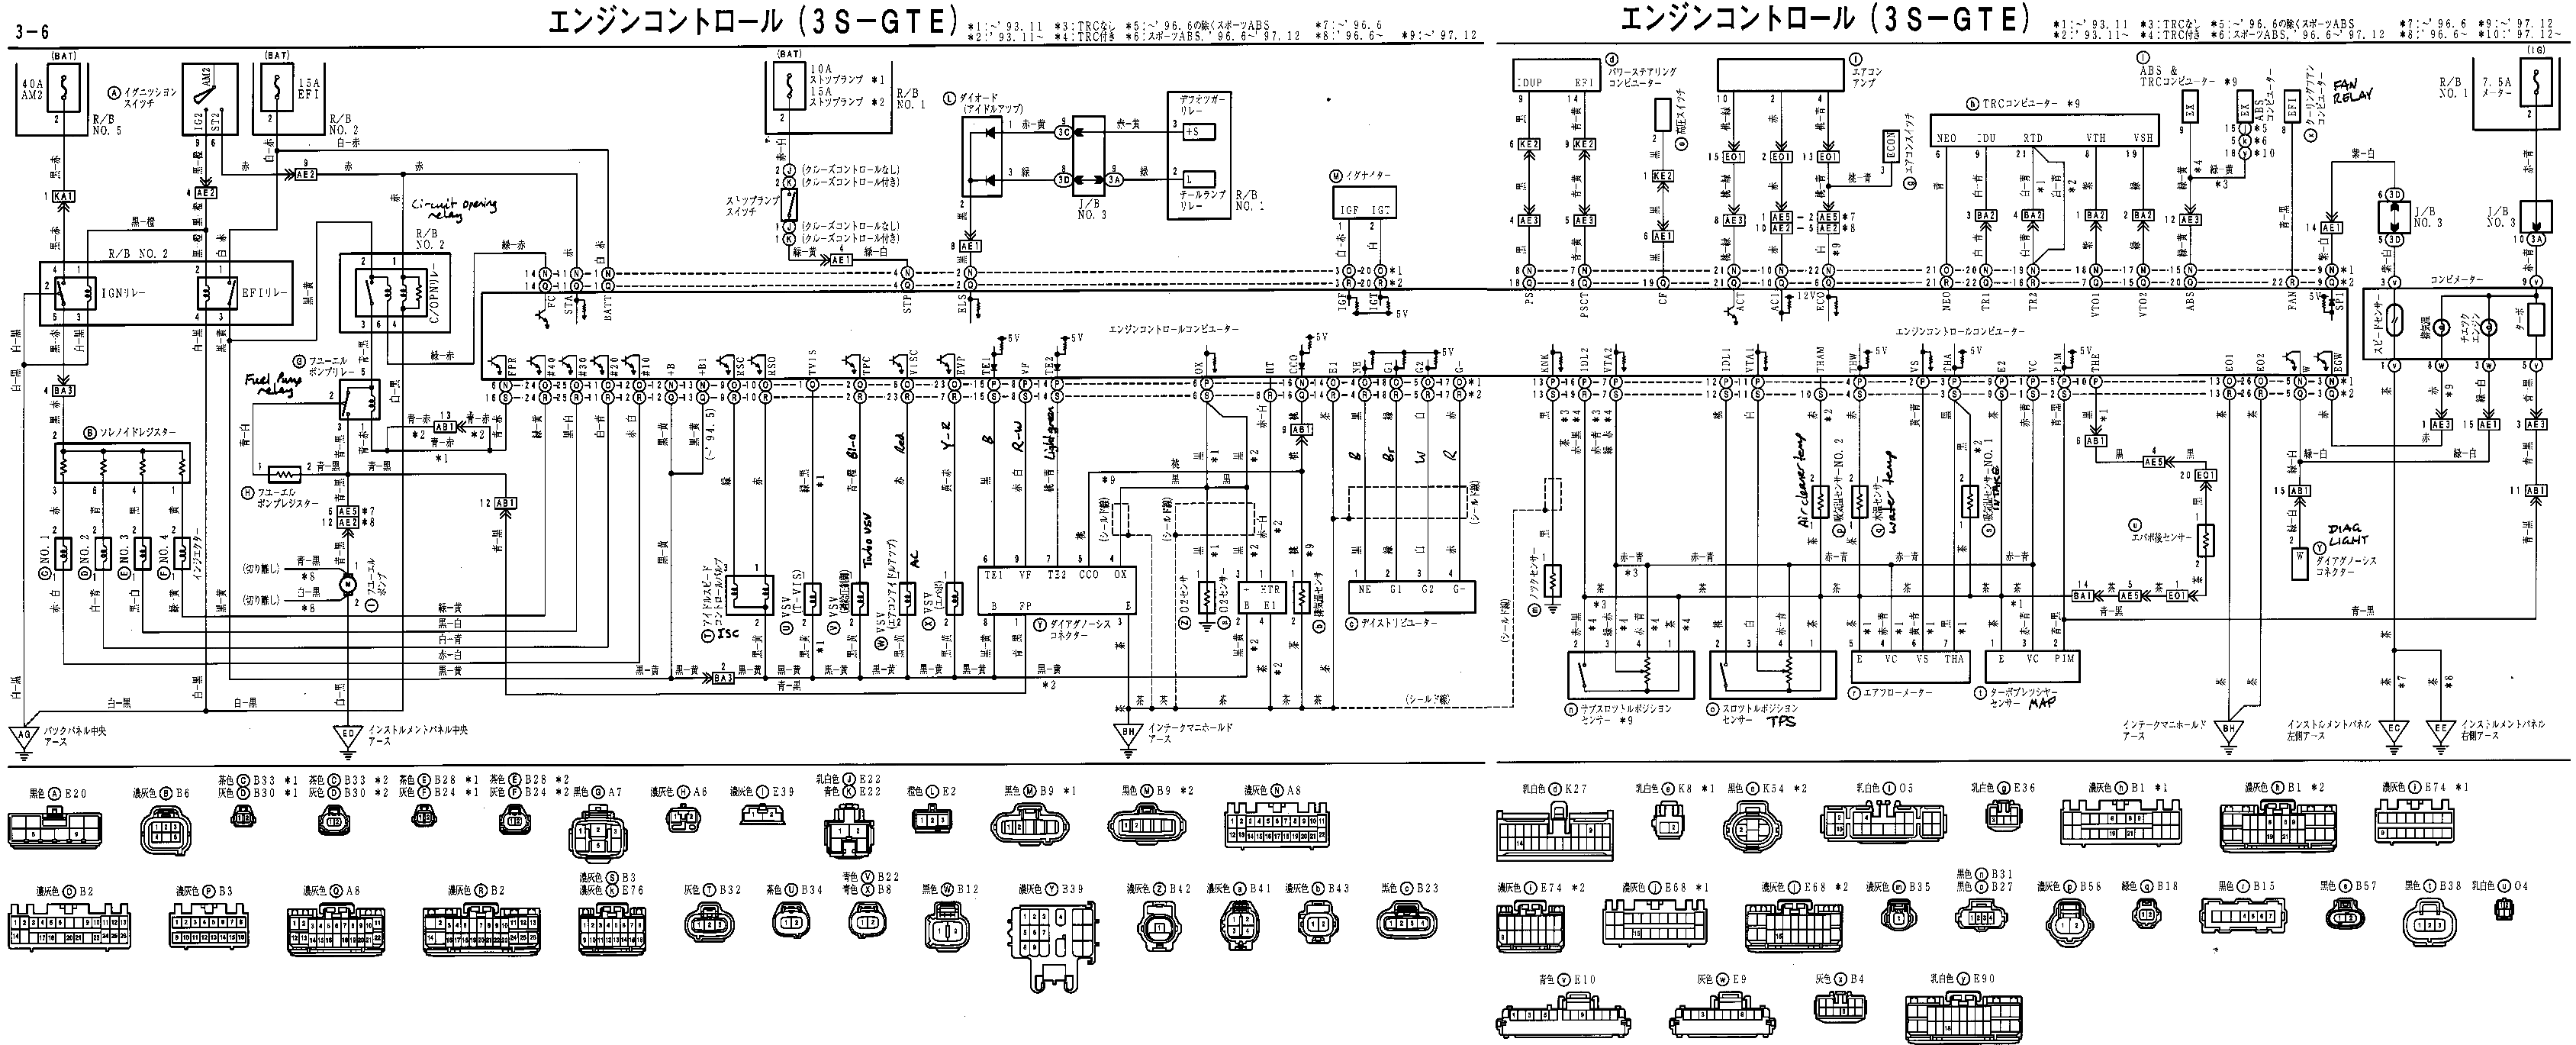 toyota wish wiring diagram toyota wiring diagrams online toyota wish wiring diagram toyota wiring diagrams